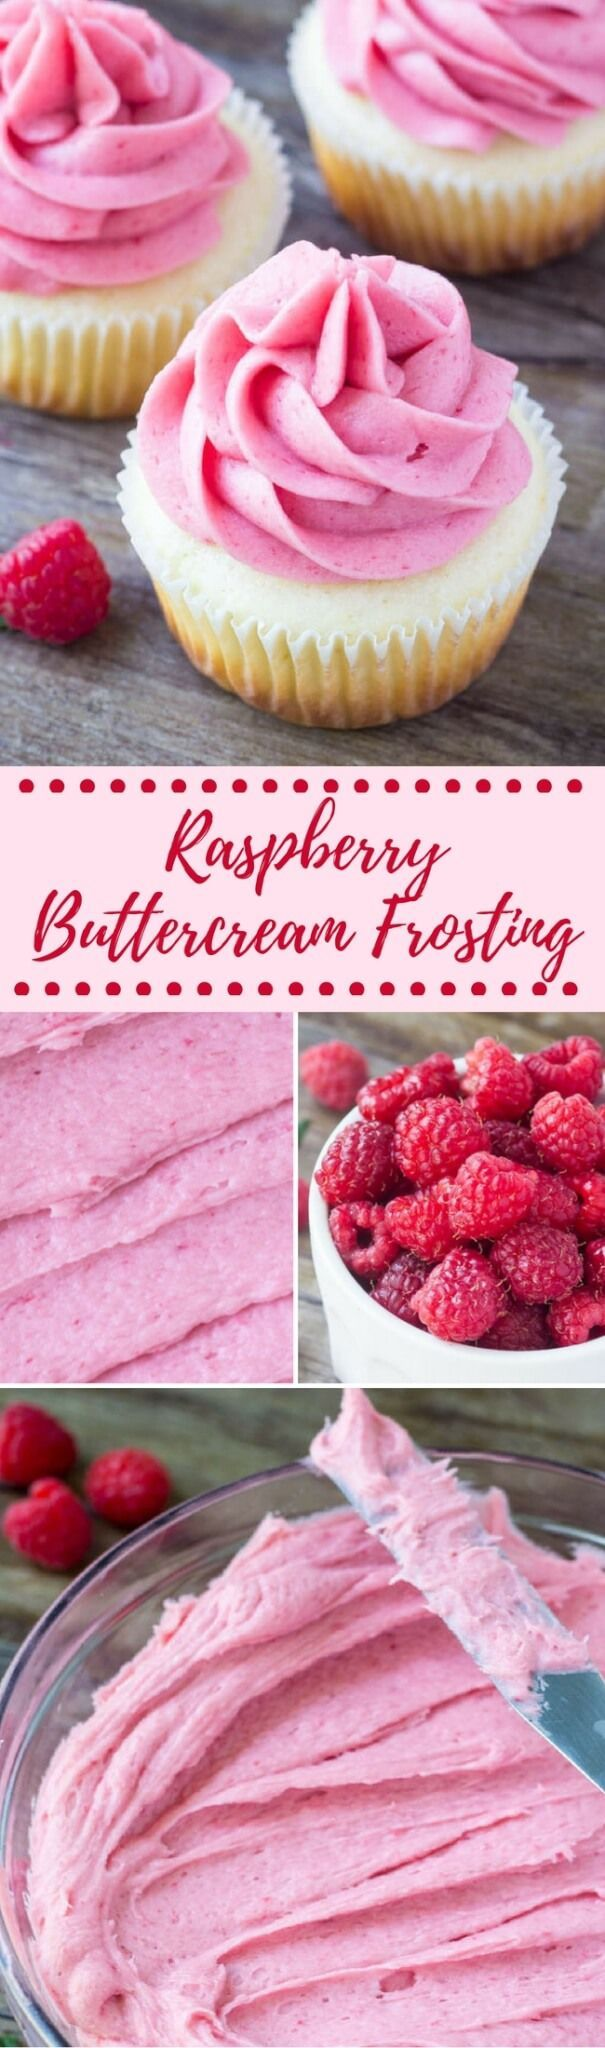 If you eat cake for the frosting - then this raspberry buttercream is a definite must. It's creamy and fluffy with a delicious natural raspberry flavor. Make it with fresh or frozen berries!